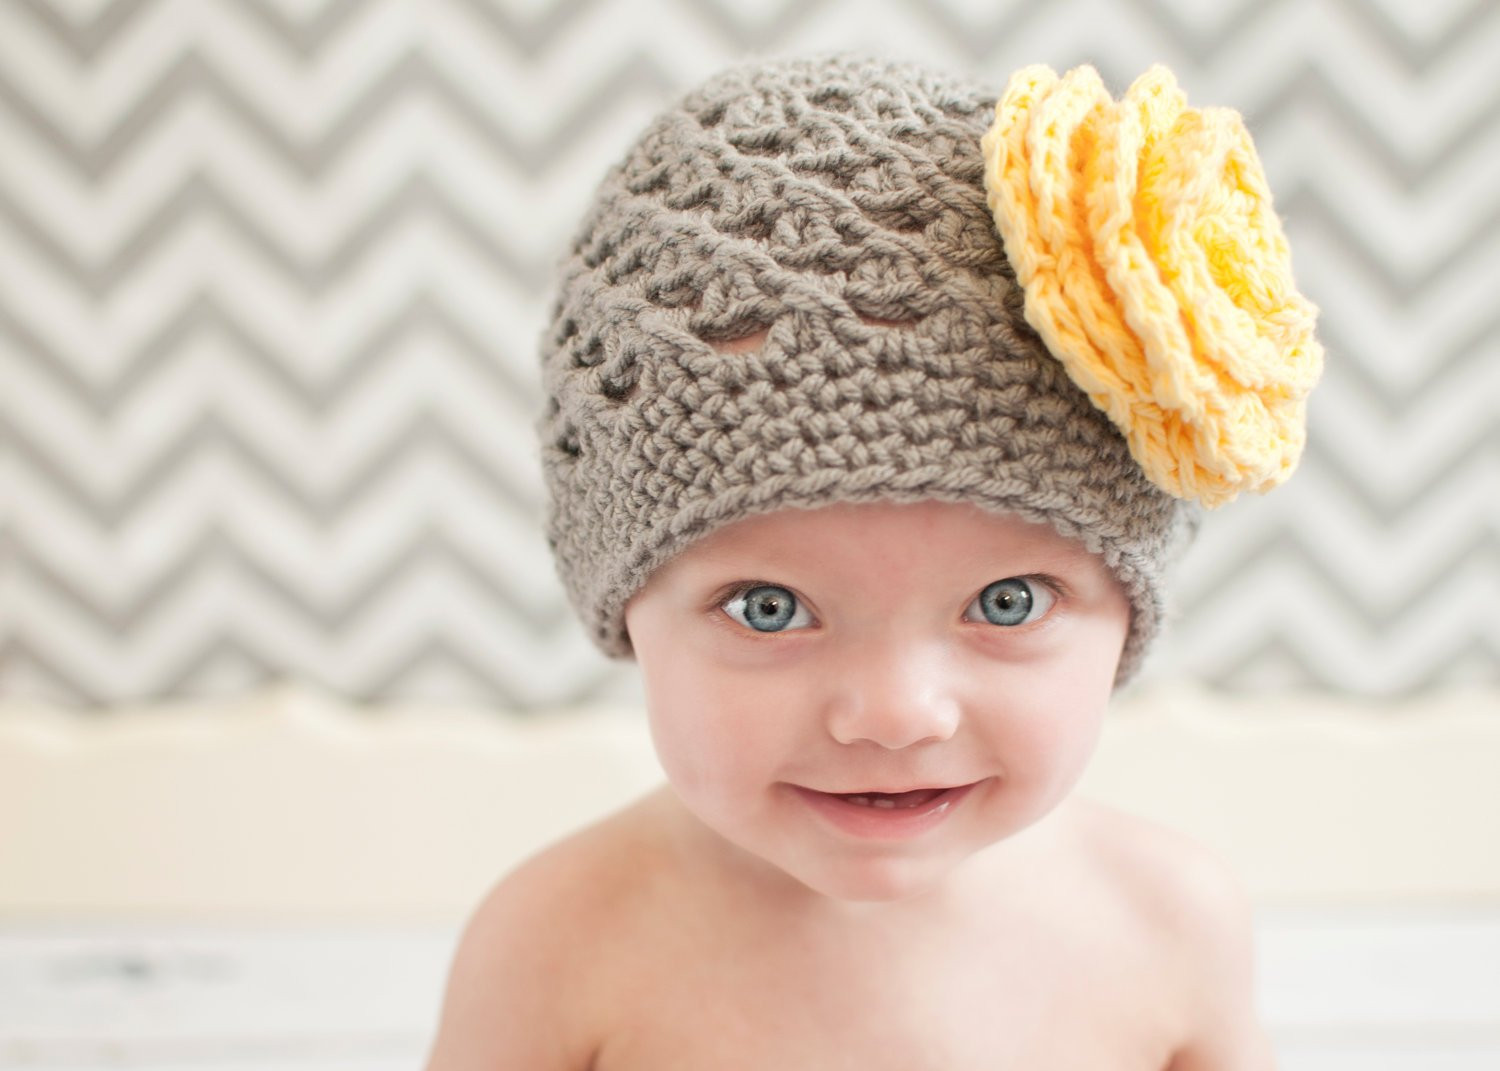 Crochet Girl Hat Fresh Baby Girl Hat Girls Hat Baby Hat Crochet Baby Hat Kids Of Superb 47 Pics Crochet Girl Hat